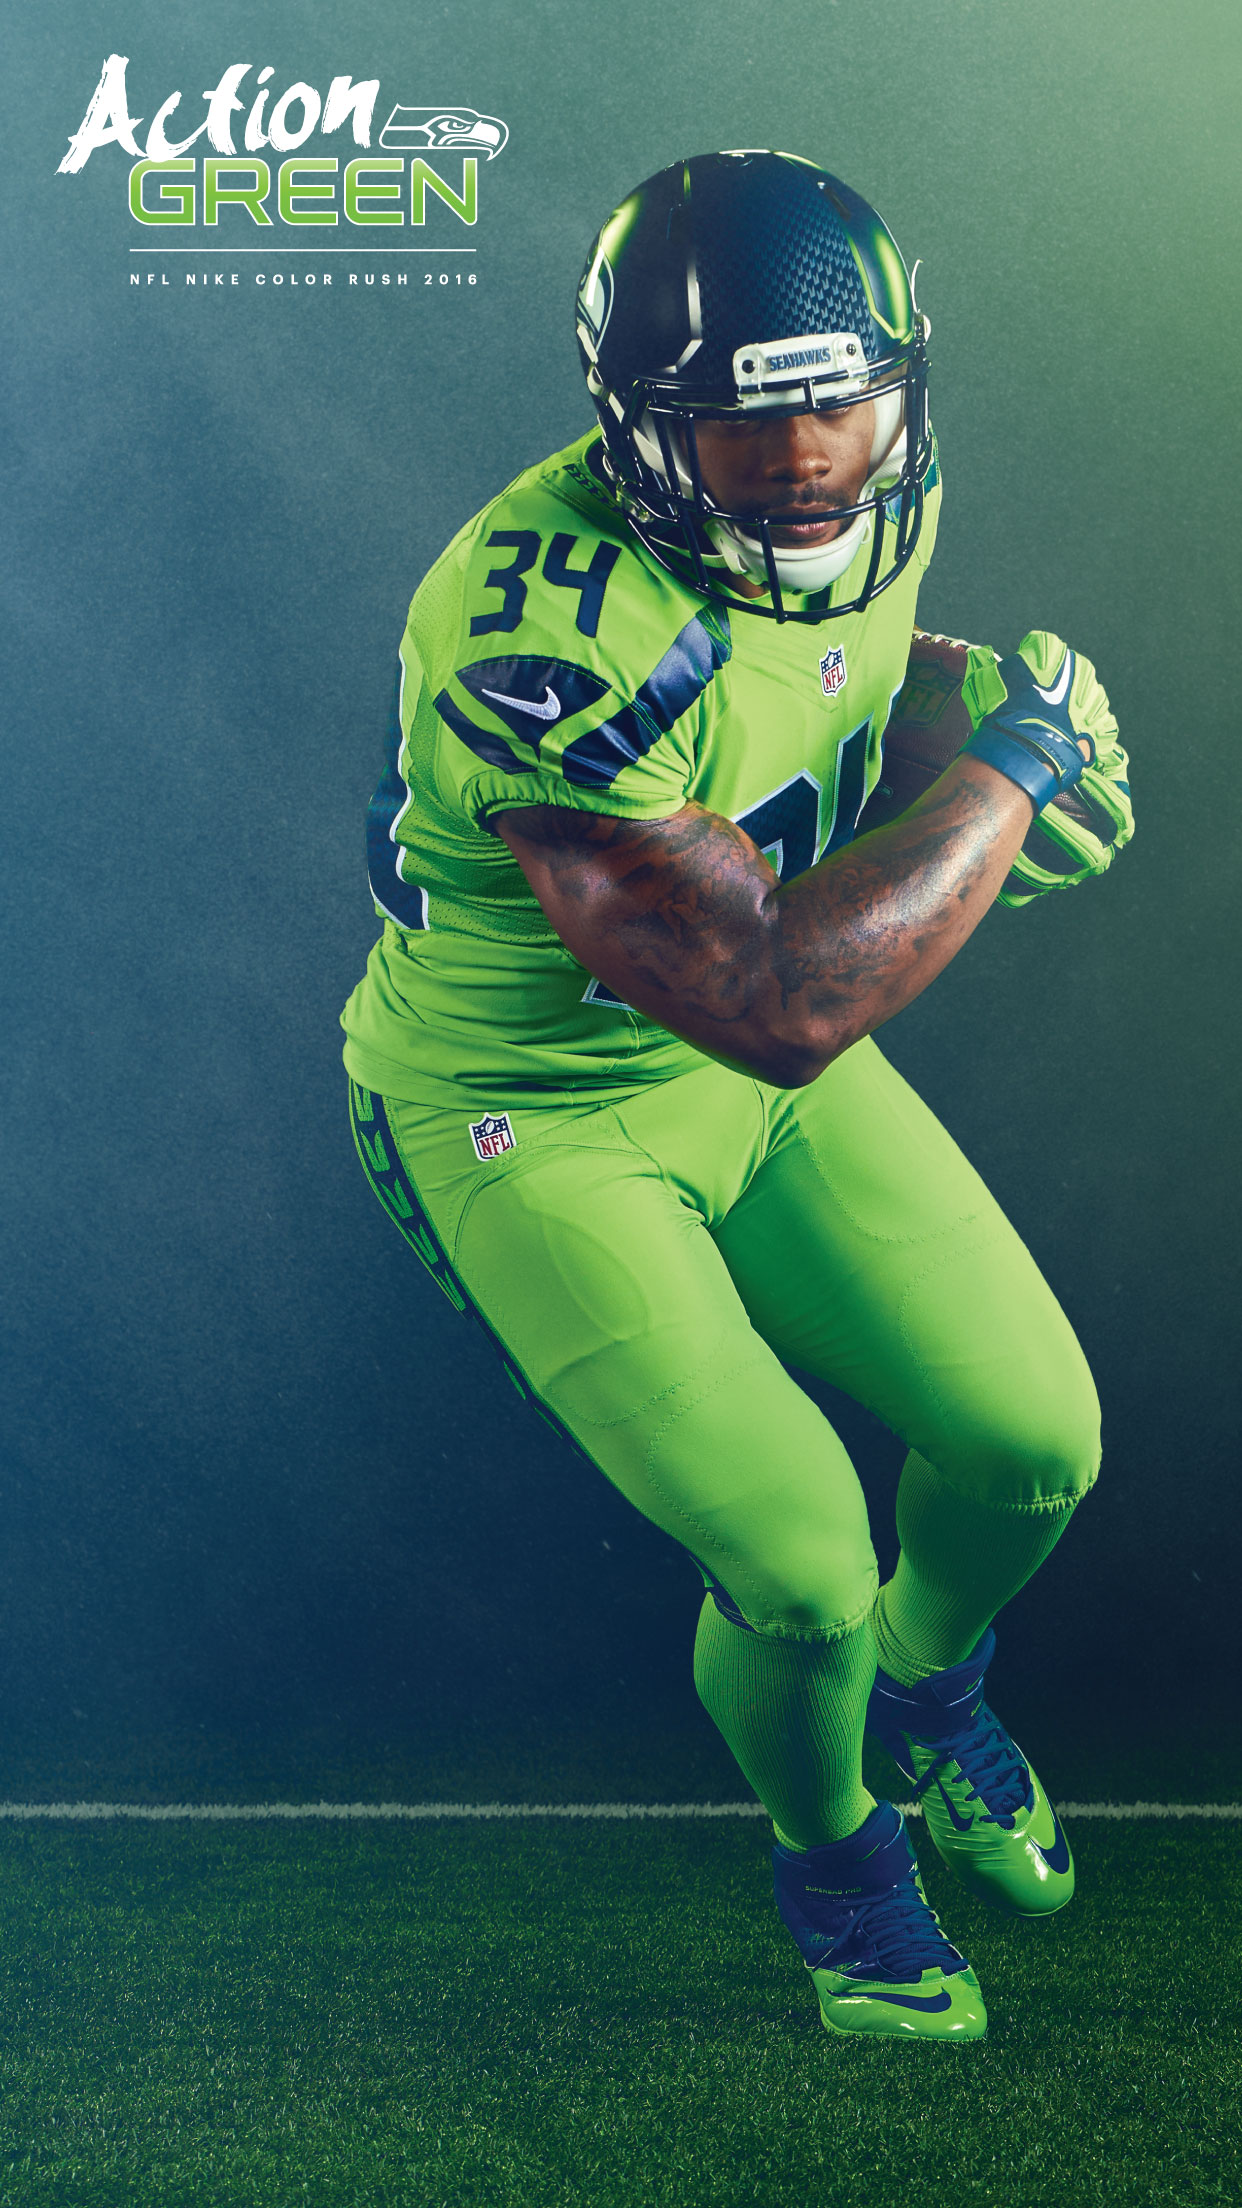 Seahawks wallpapers seattle seahawks 1024x728 1680x1024 1920x1200 ipad windows phone voltagebd Image collections